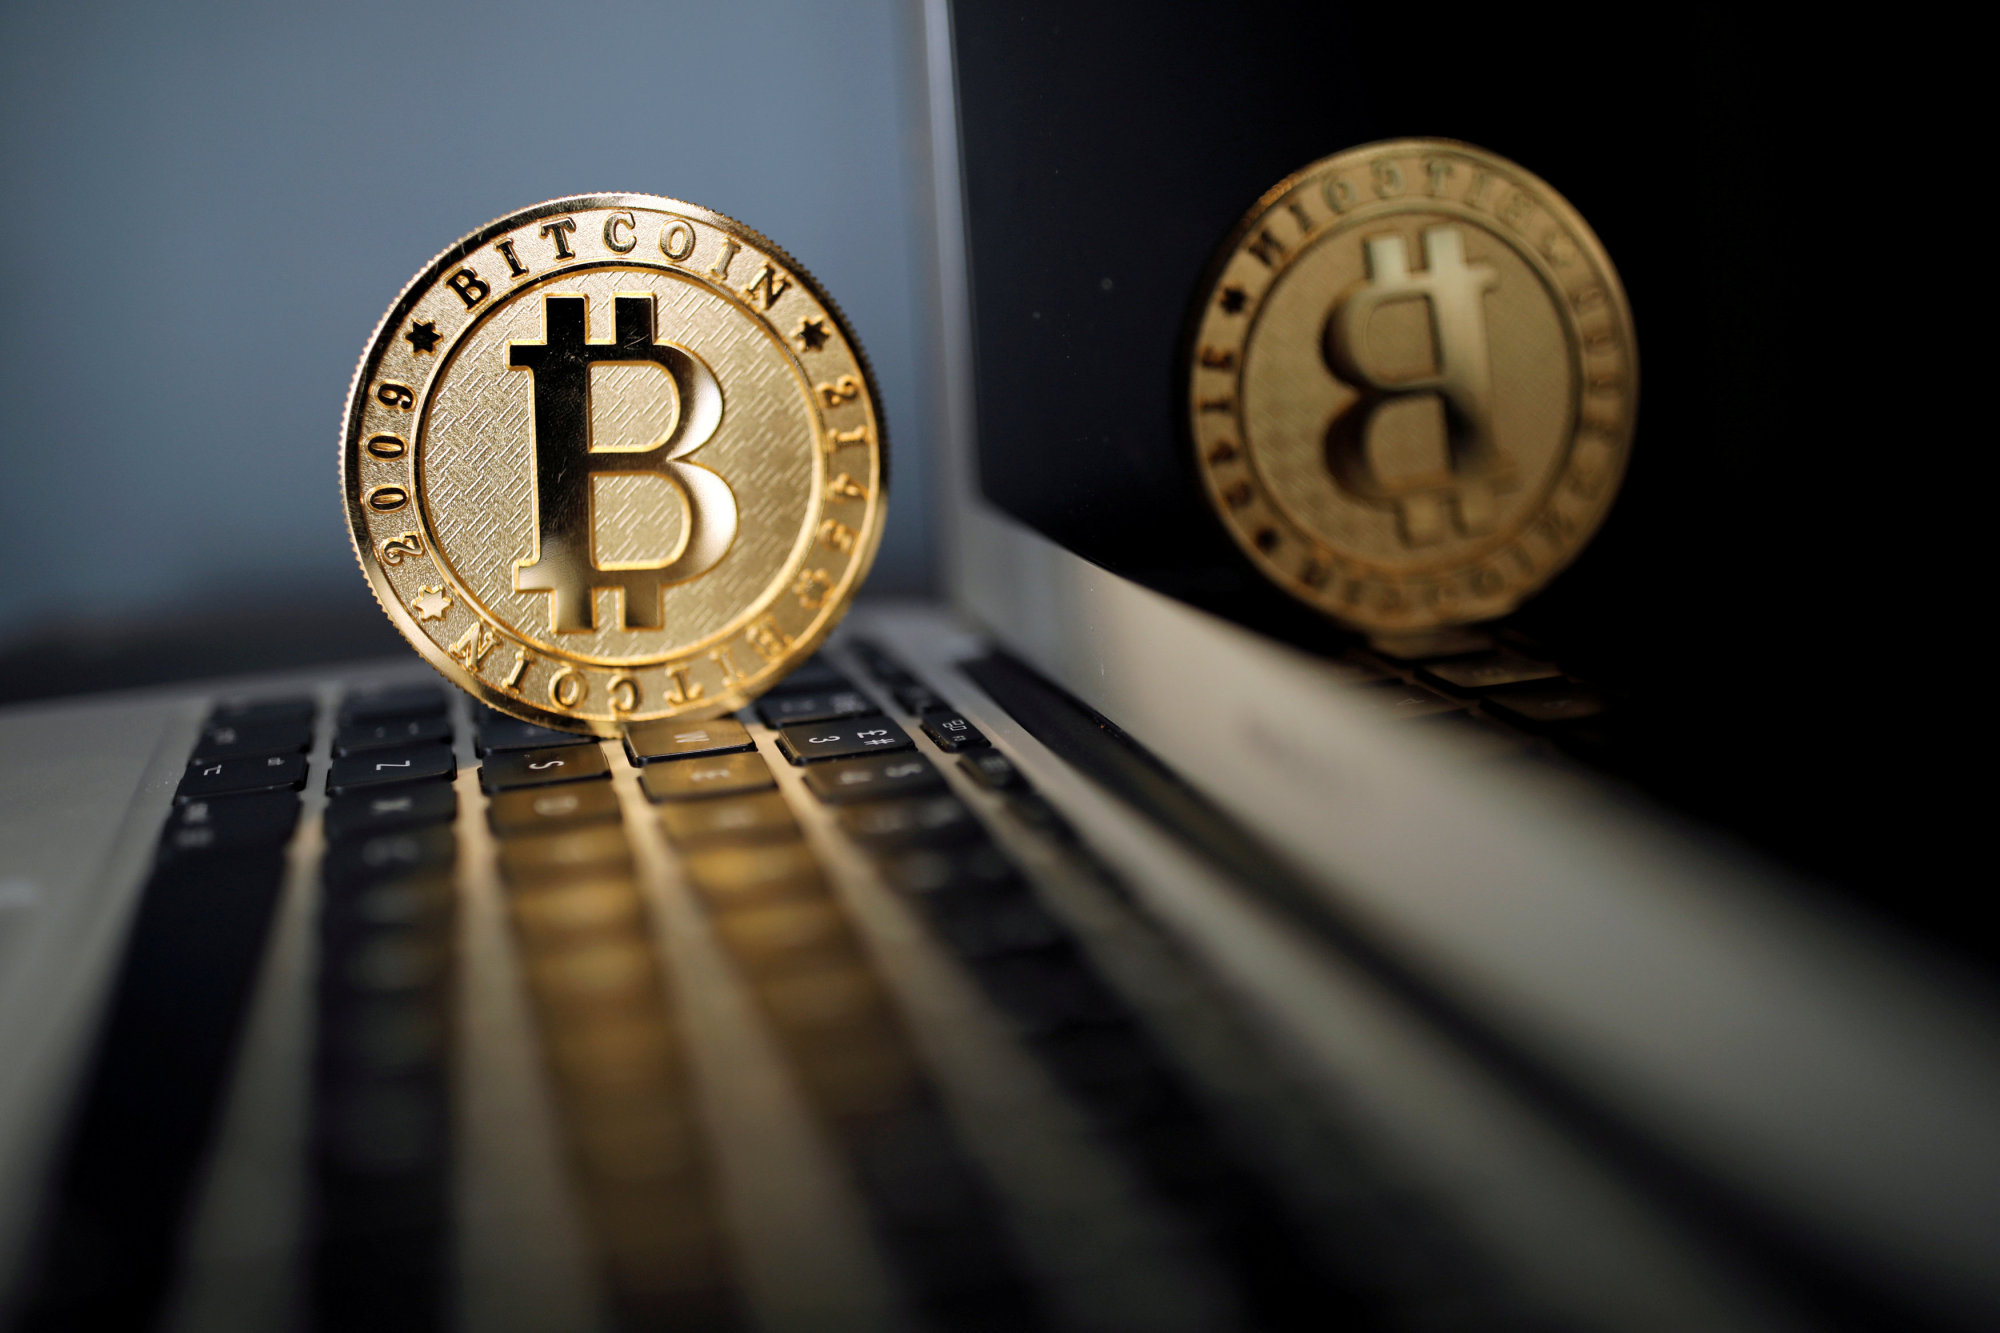 Experts say North Korea could be ramping up cyberattacks in a bid to secure bitcoins and other cryptocurrencies amid harsh trade restrictions. | REUTERS